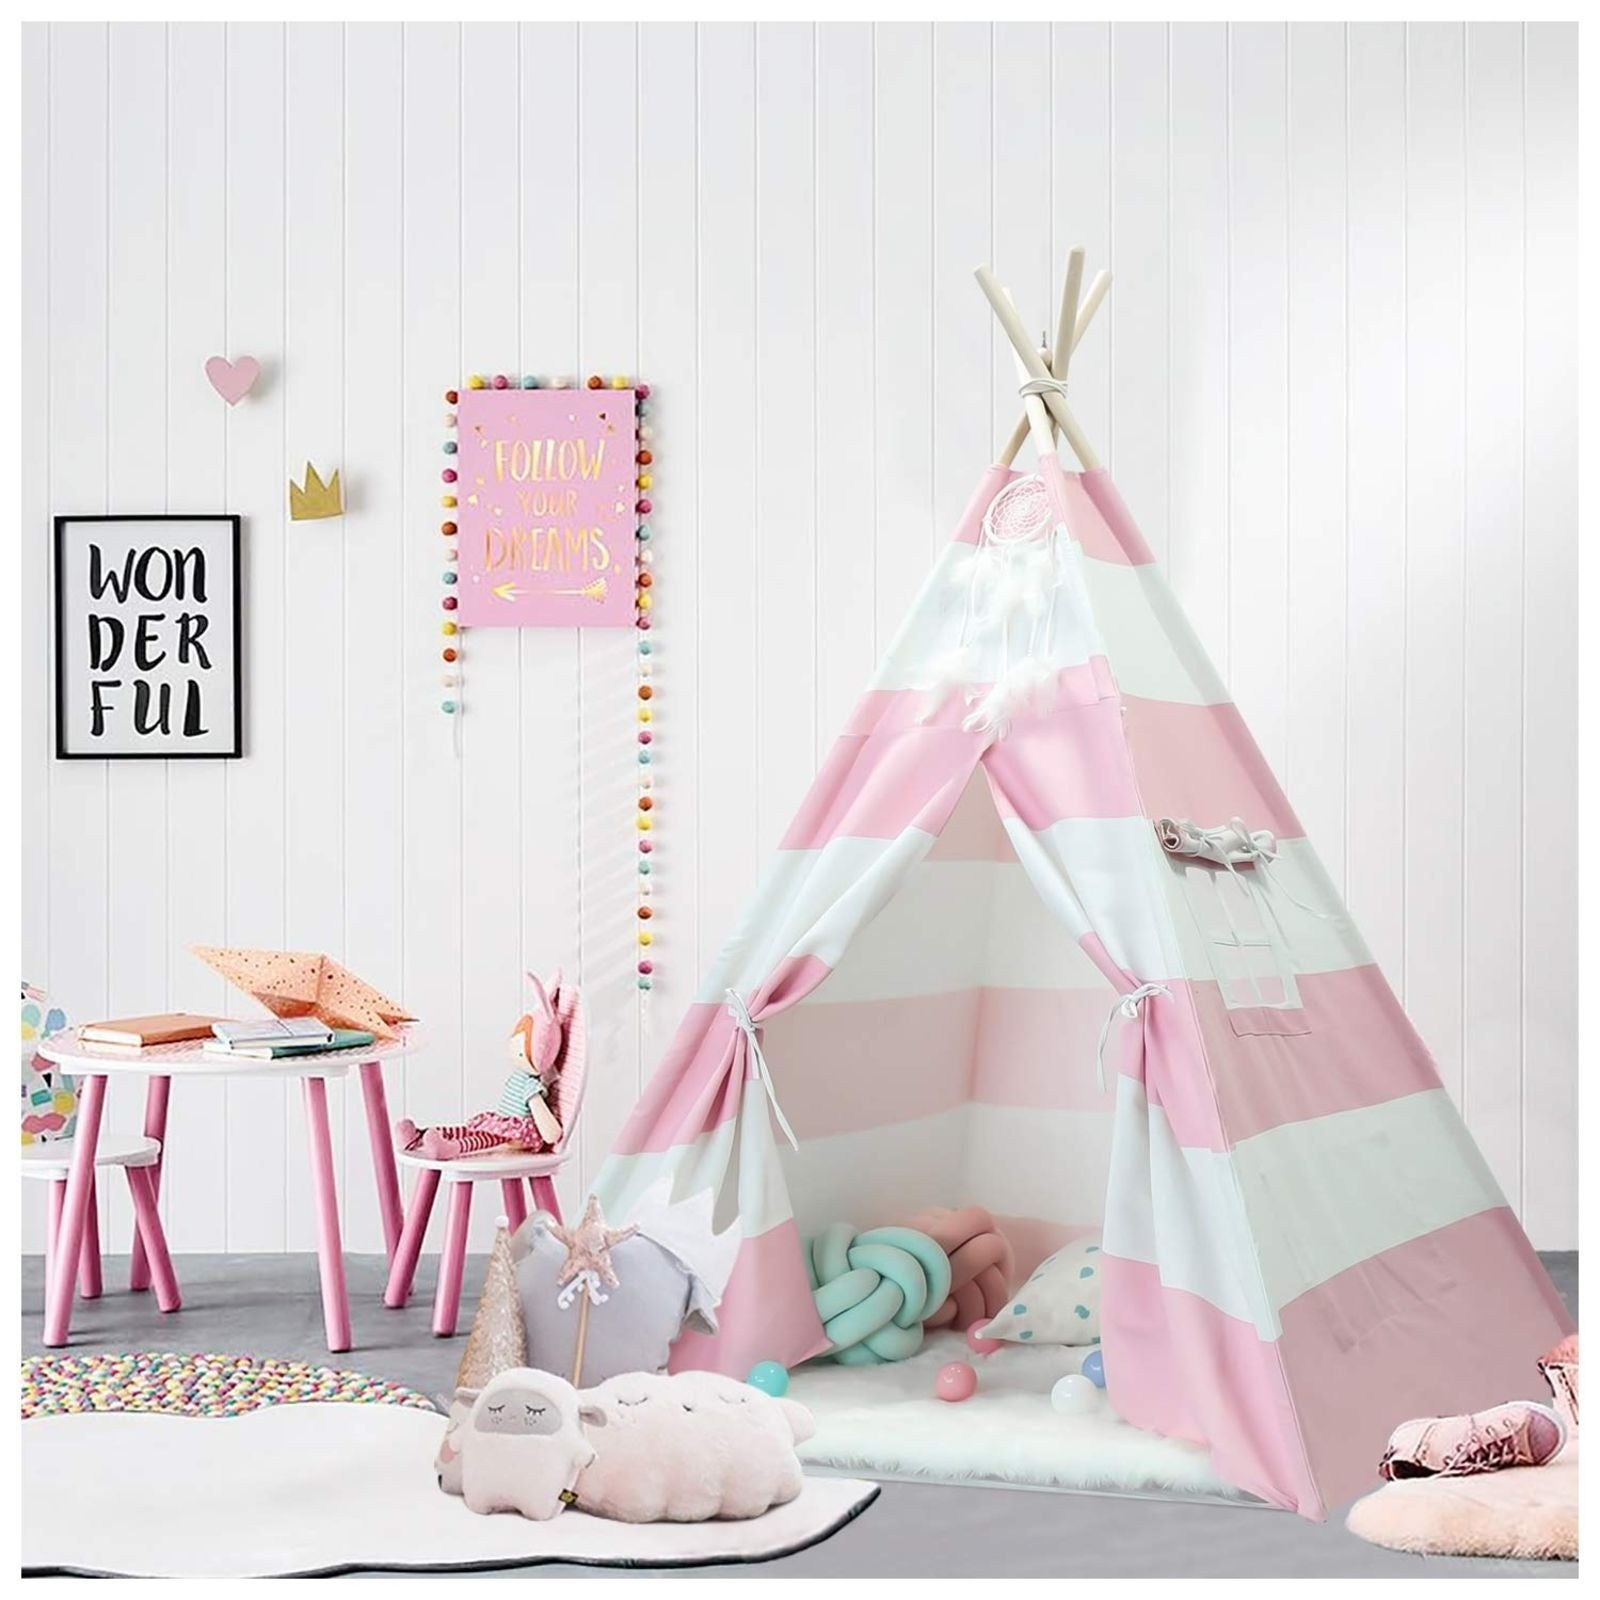 Create a Play Area With an Indoor Teepee Tent